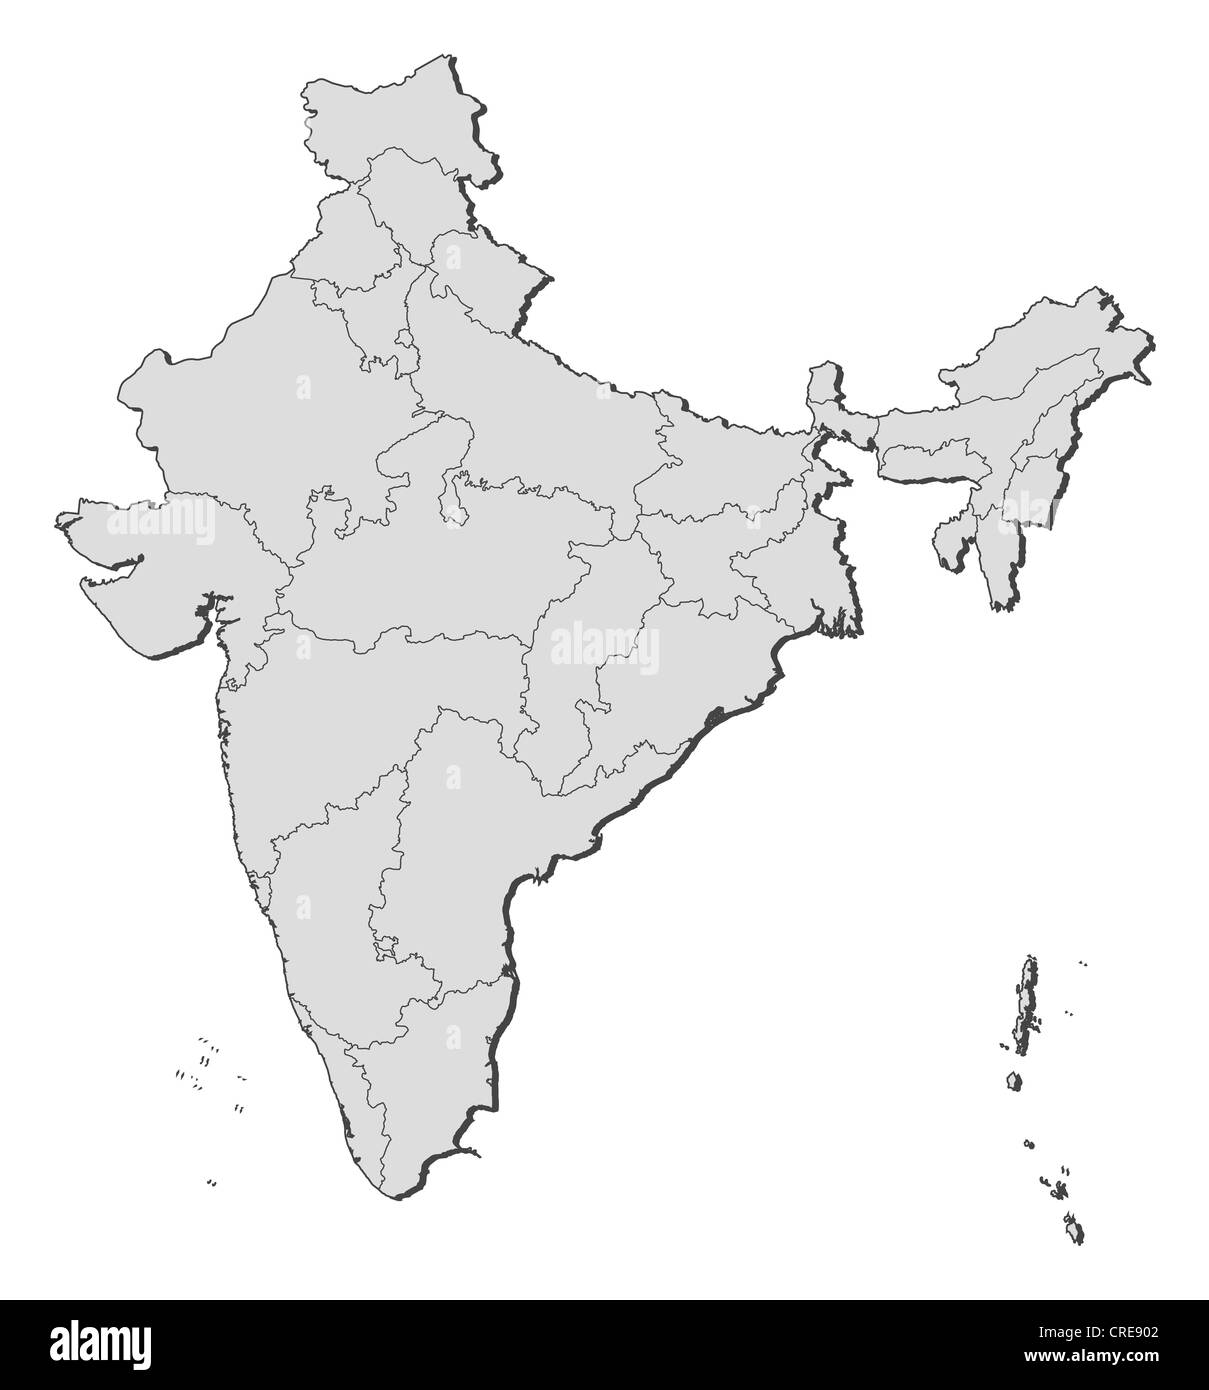 India Map With States Black and White Stock Photos & Images ... on india river map, india south asia map, texas county map black and white, india political map, river clip art black and white, india map with latitude and longitude, india map with city,